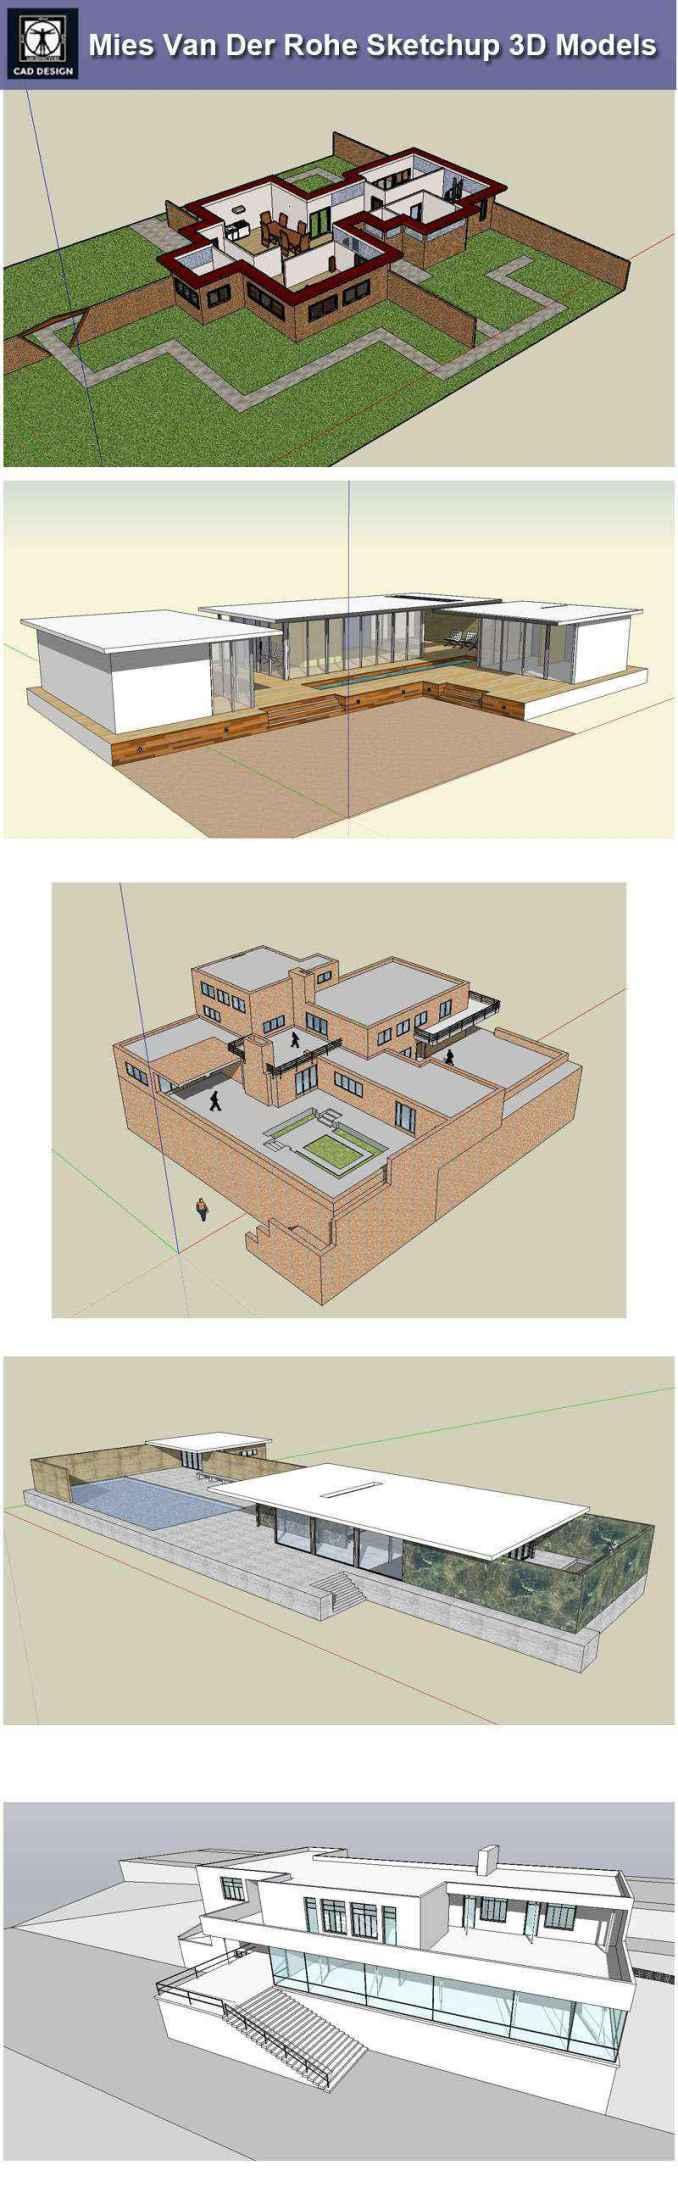 163c76ca8d 17 Projects of Mies Van Der Rohe Architecture Sketchup 3D Models ...